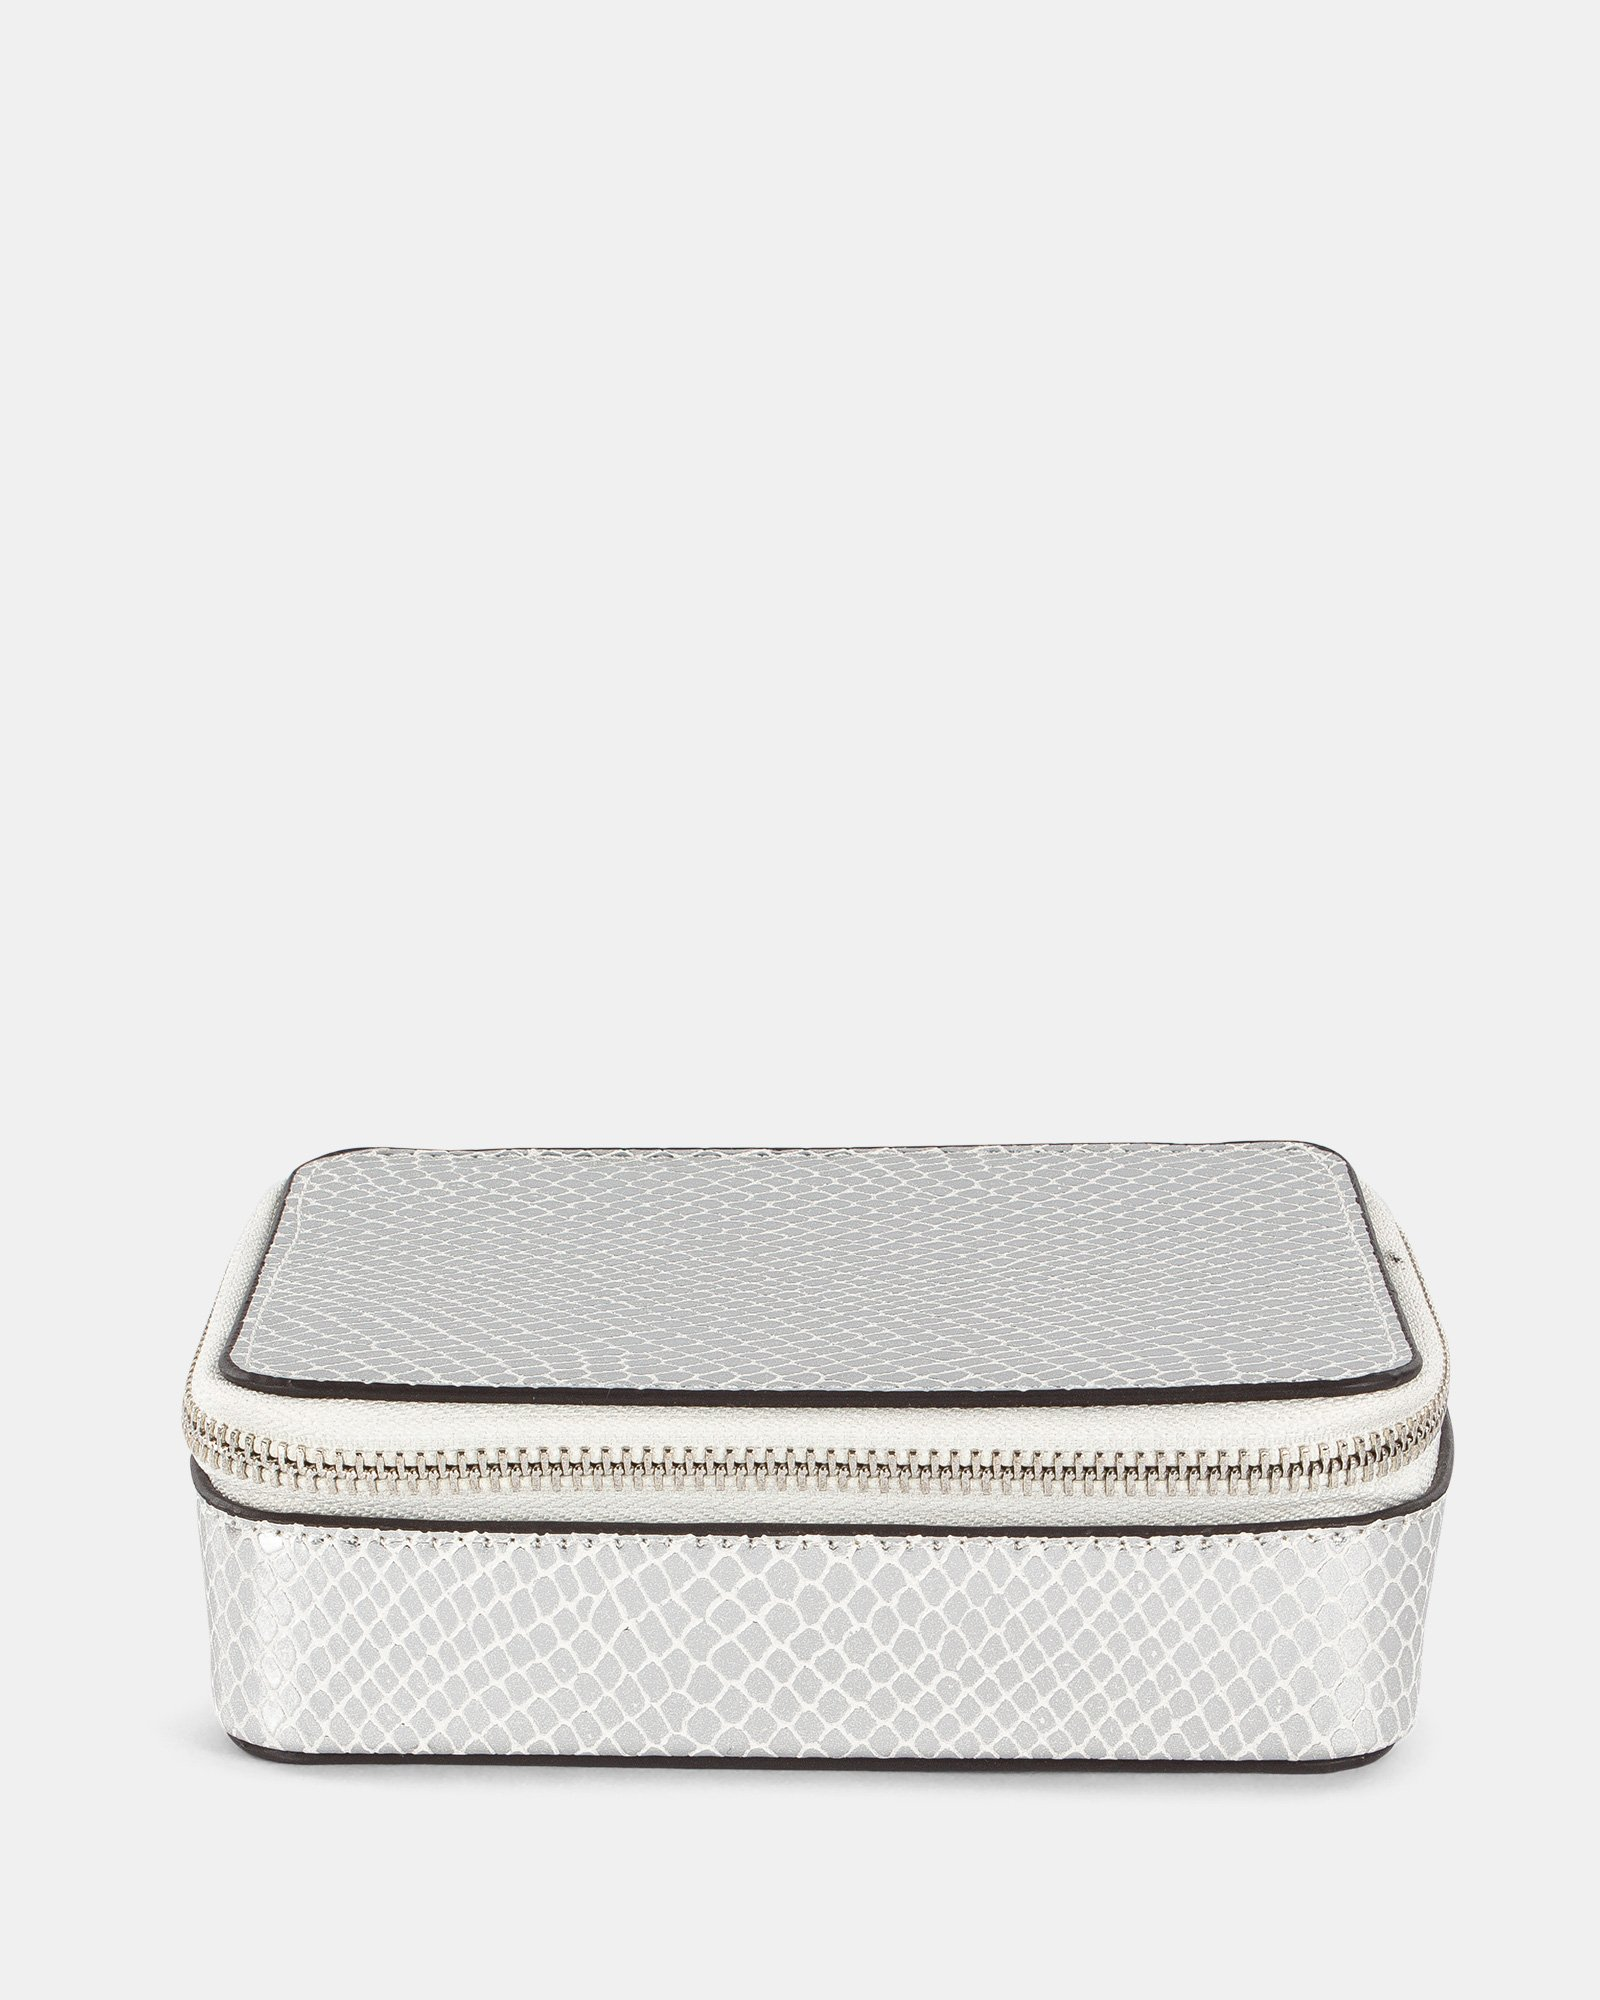 Grazioso - Travel Jewelry box   - Céline Dion - Zoom